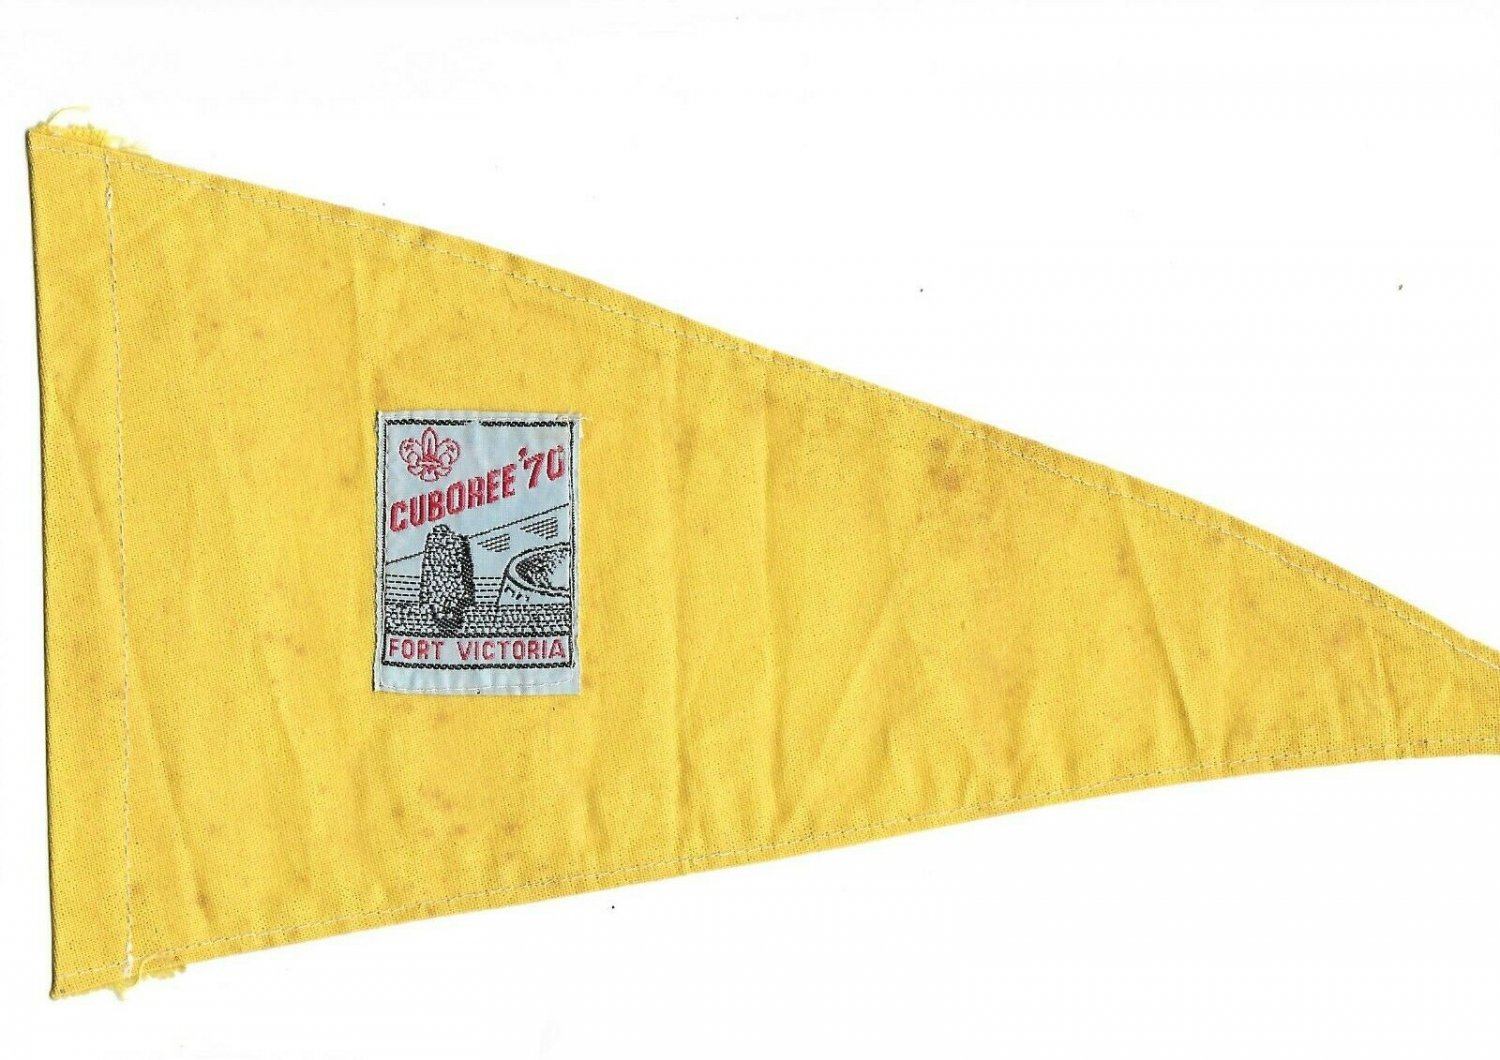 BOYS SCOUTS CANADA Alberta FLag Pennant of the Cuboree Original 1970 in Fort Victoria